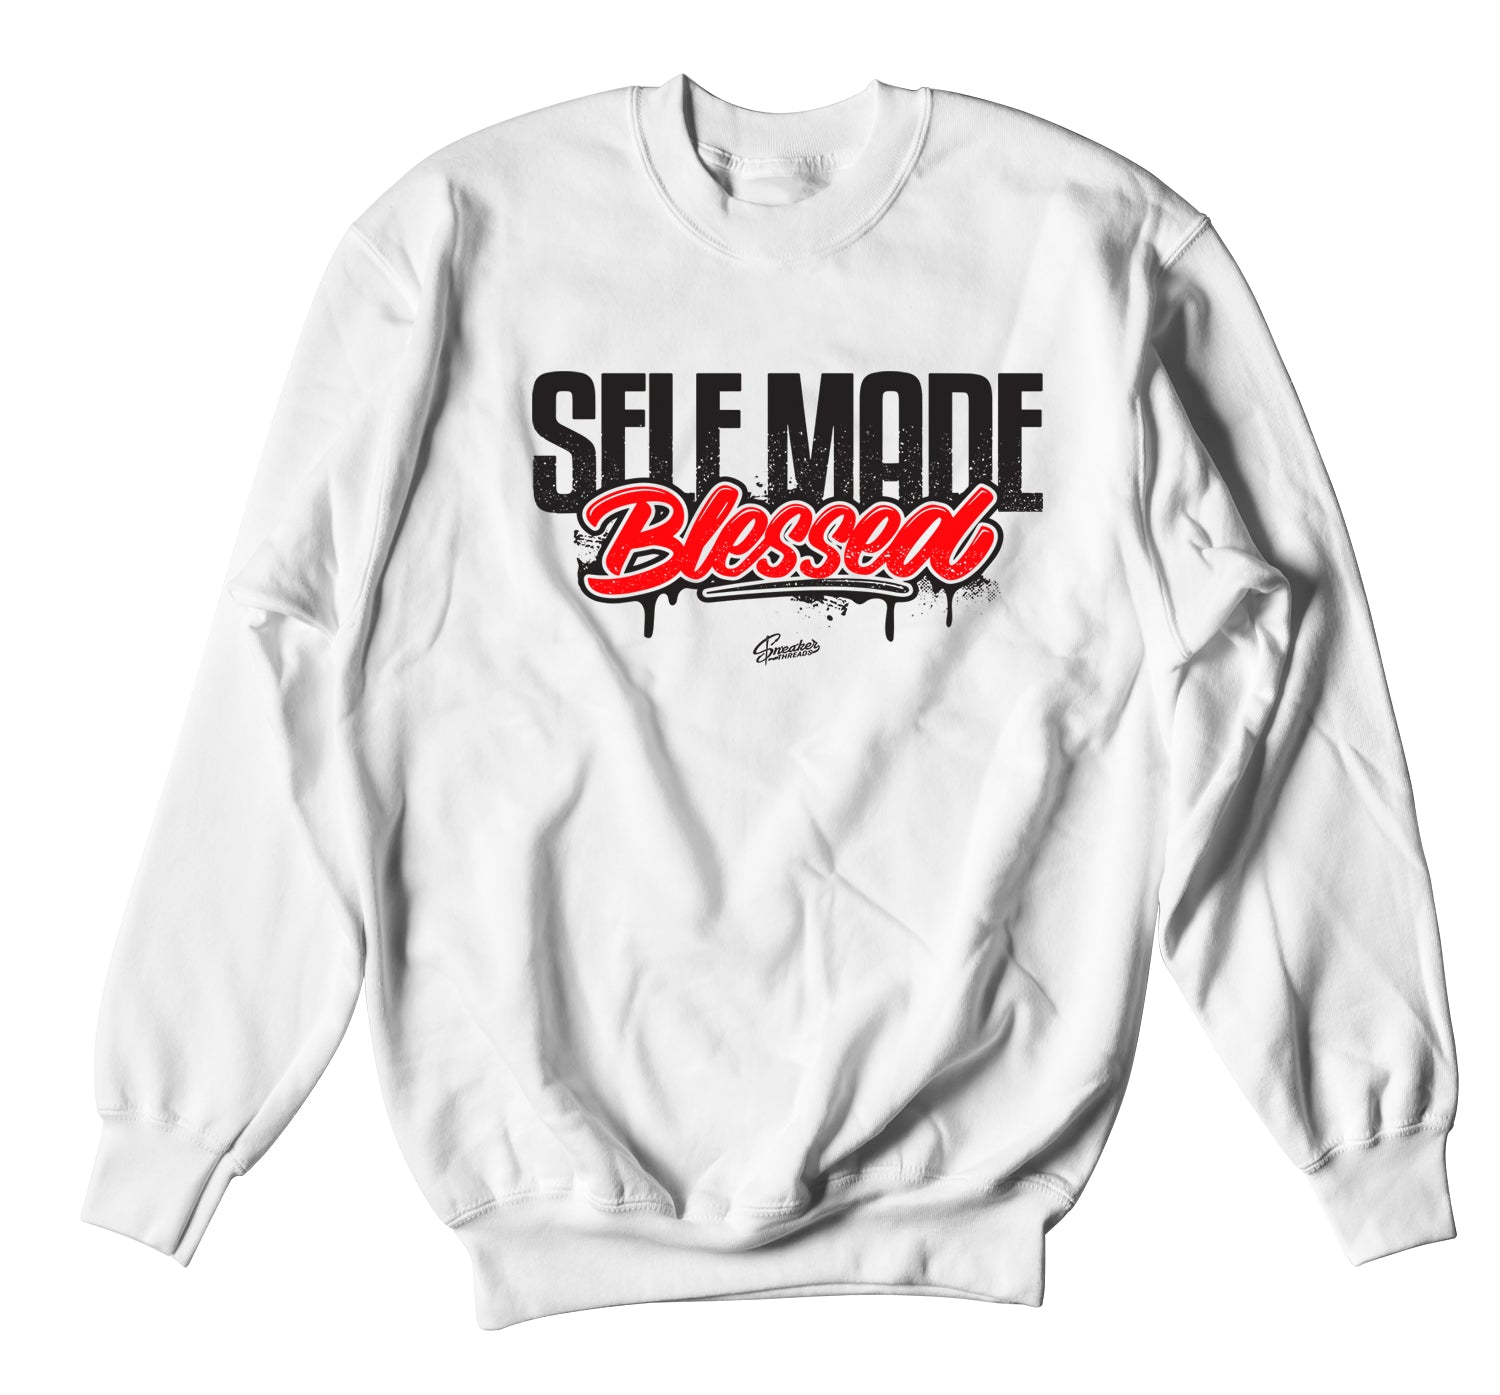 crewneck for men made to match with the foamposite